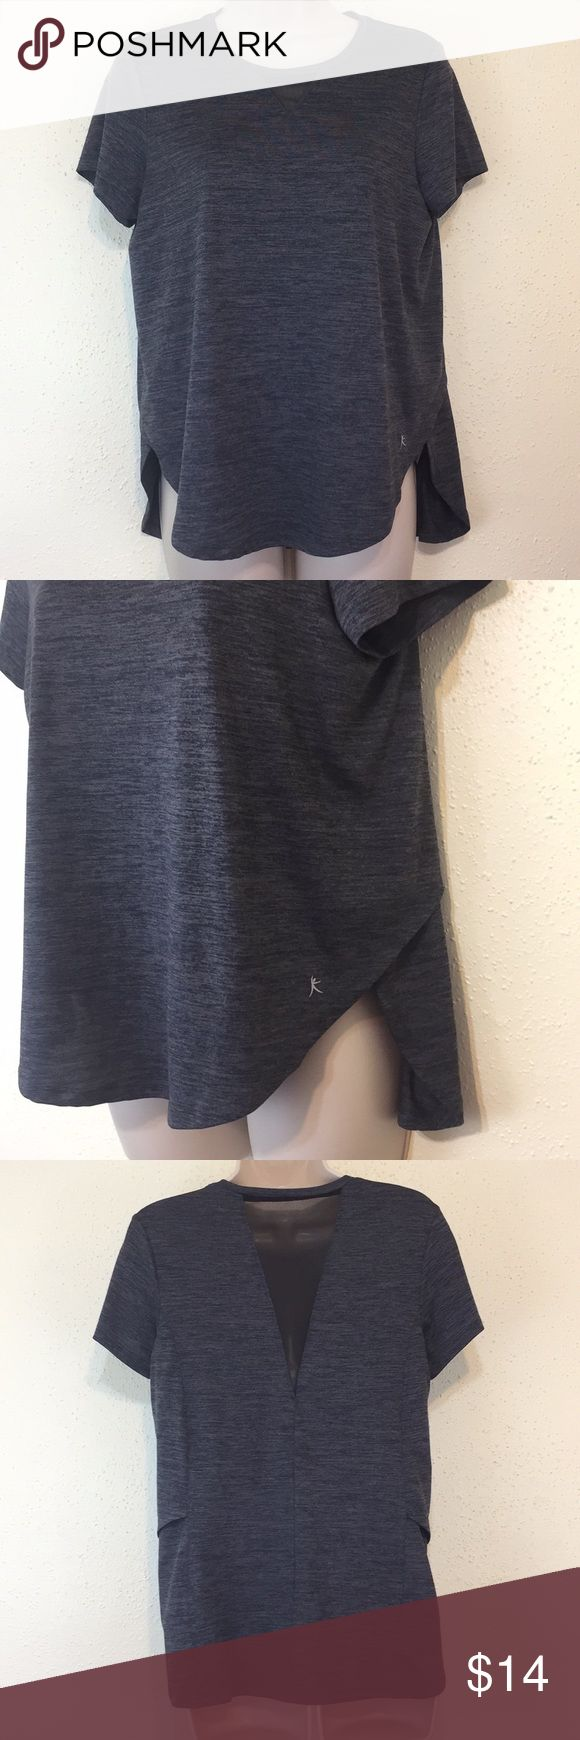 Danskin Now Gray Cutout Athletic Shirt Loose fitting and lightweight Heathered Gray Athletic Top. Slots on sides. Mesh triangle cutout on back. Gently worn. Danskin Now Tops Tees - Short Sleeve